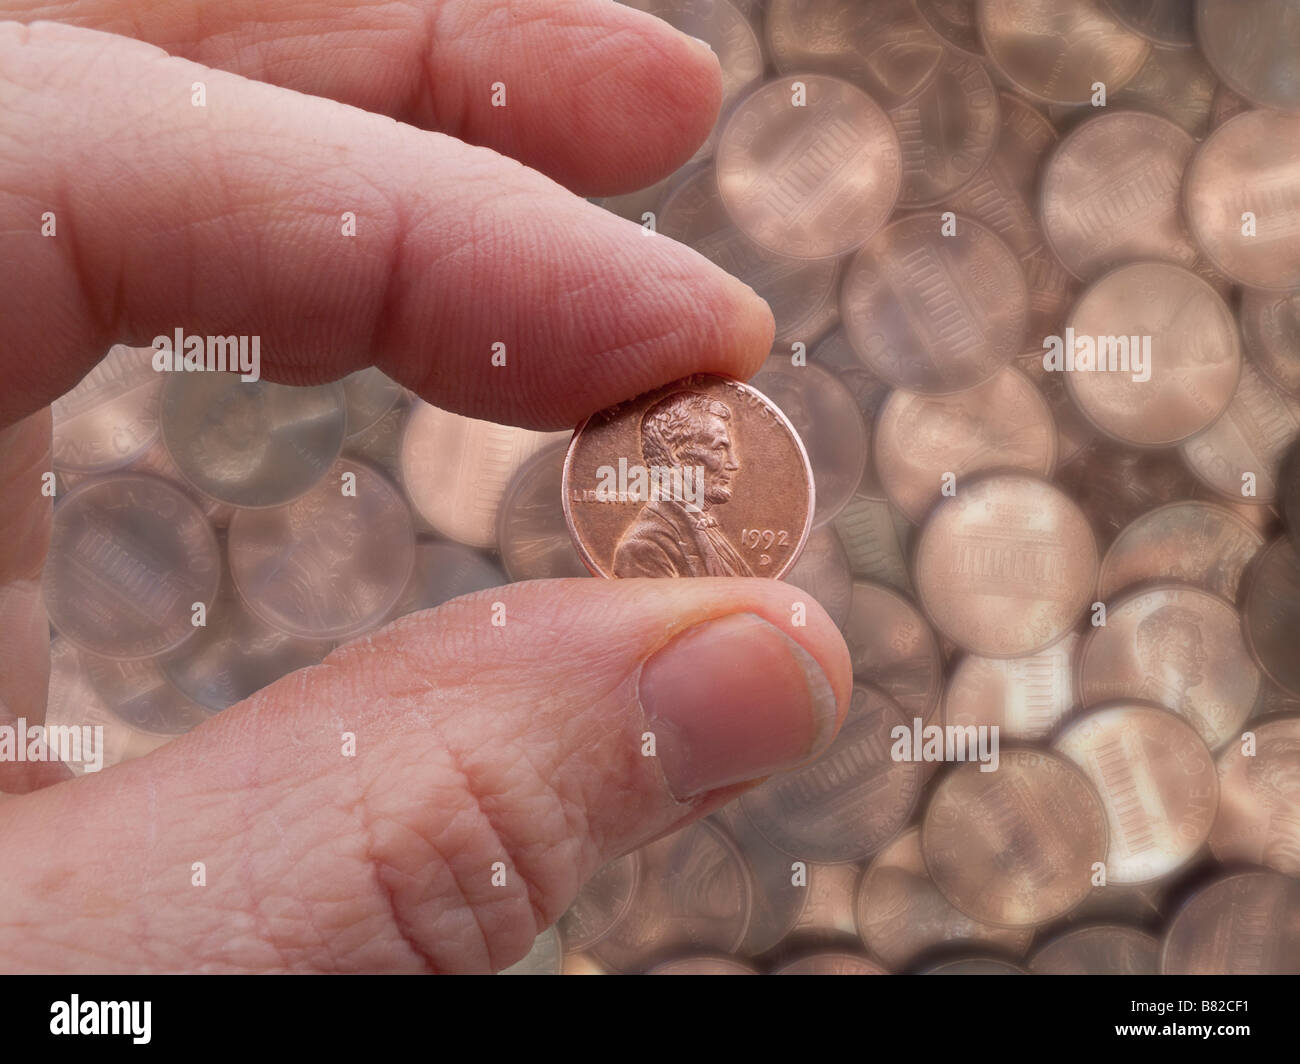 Hand holding penny, pennies as background Stock Photo